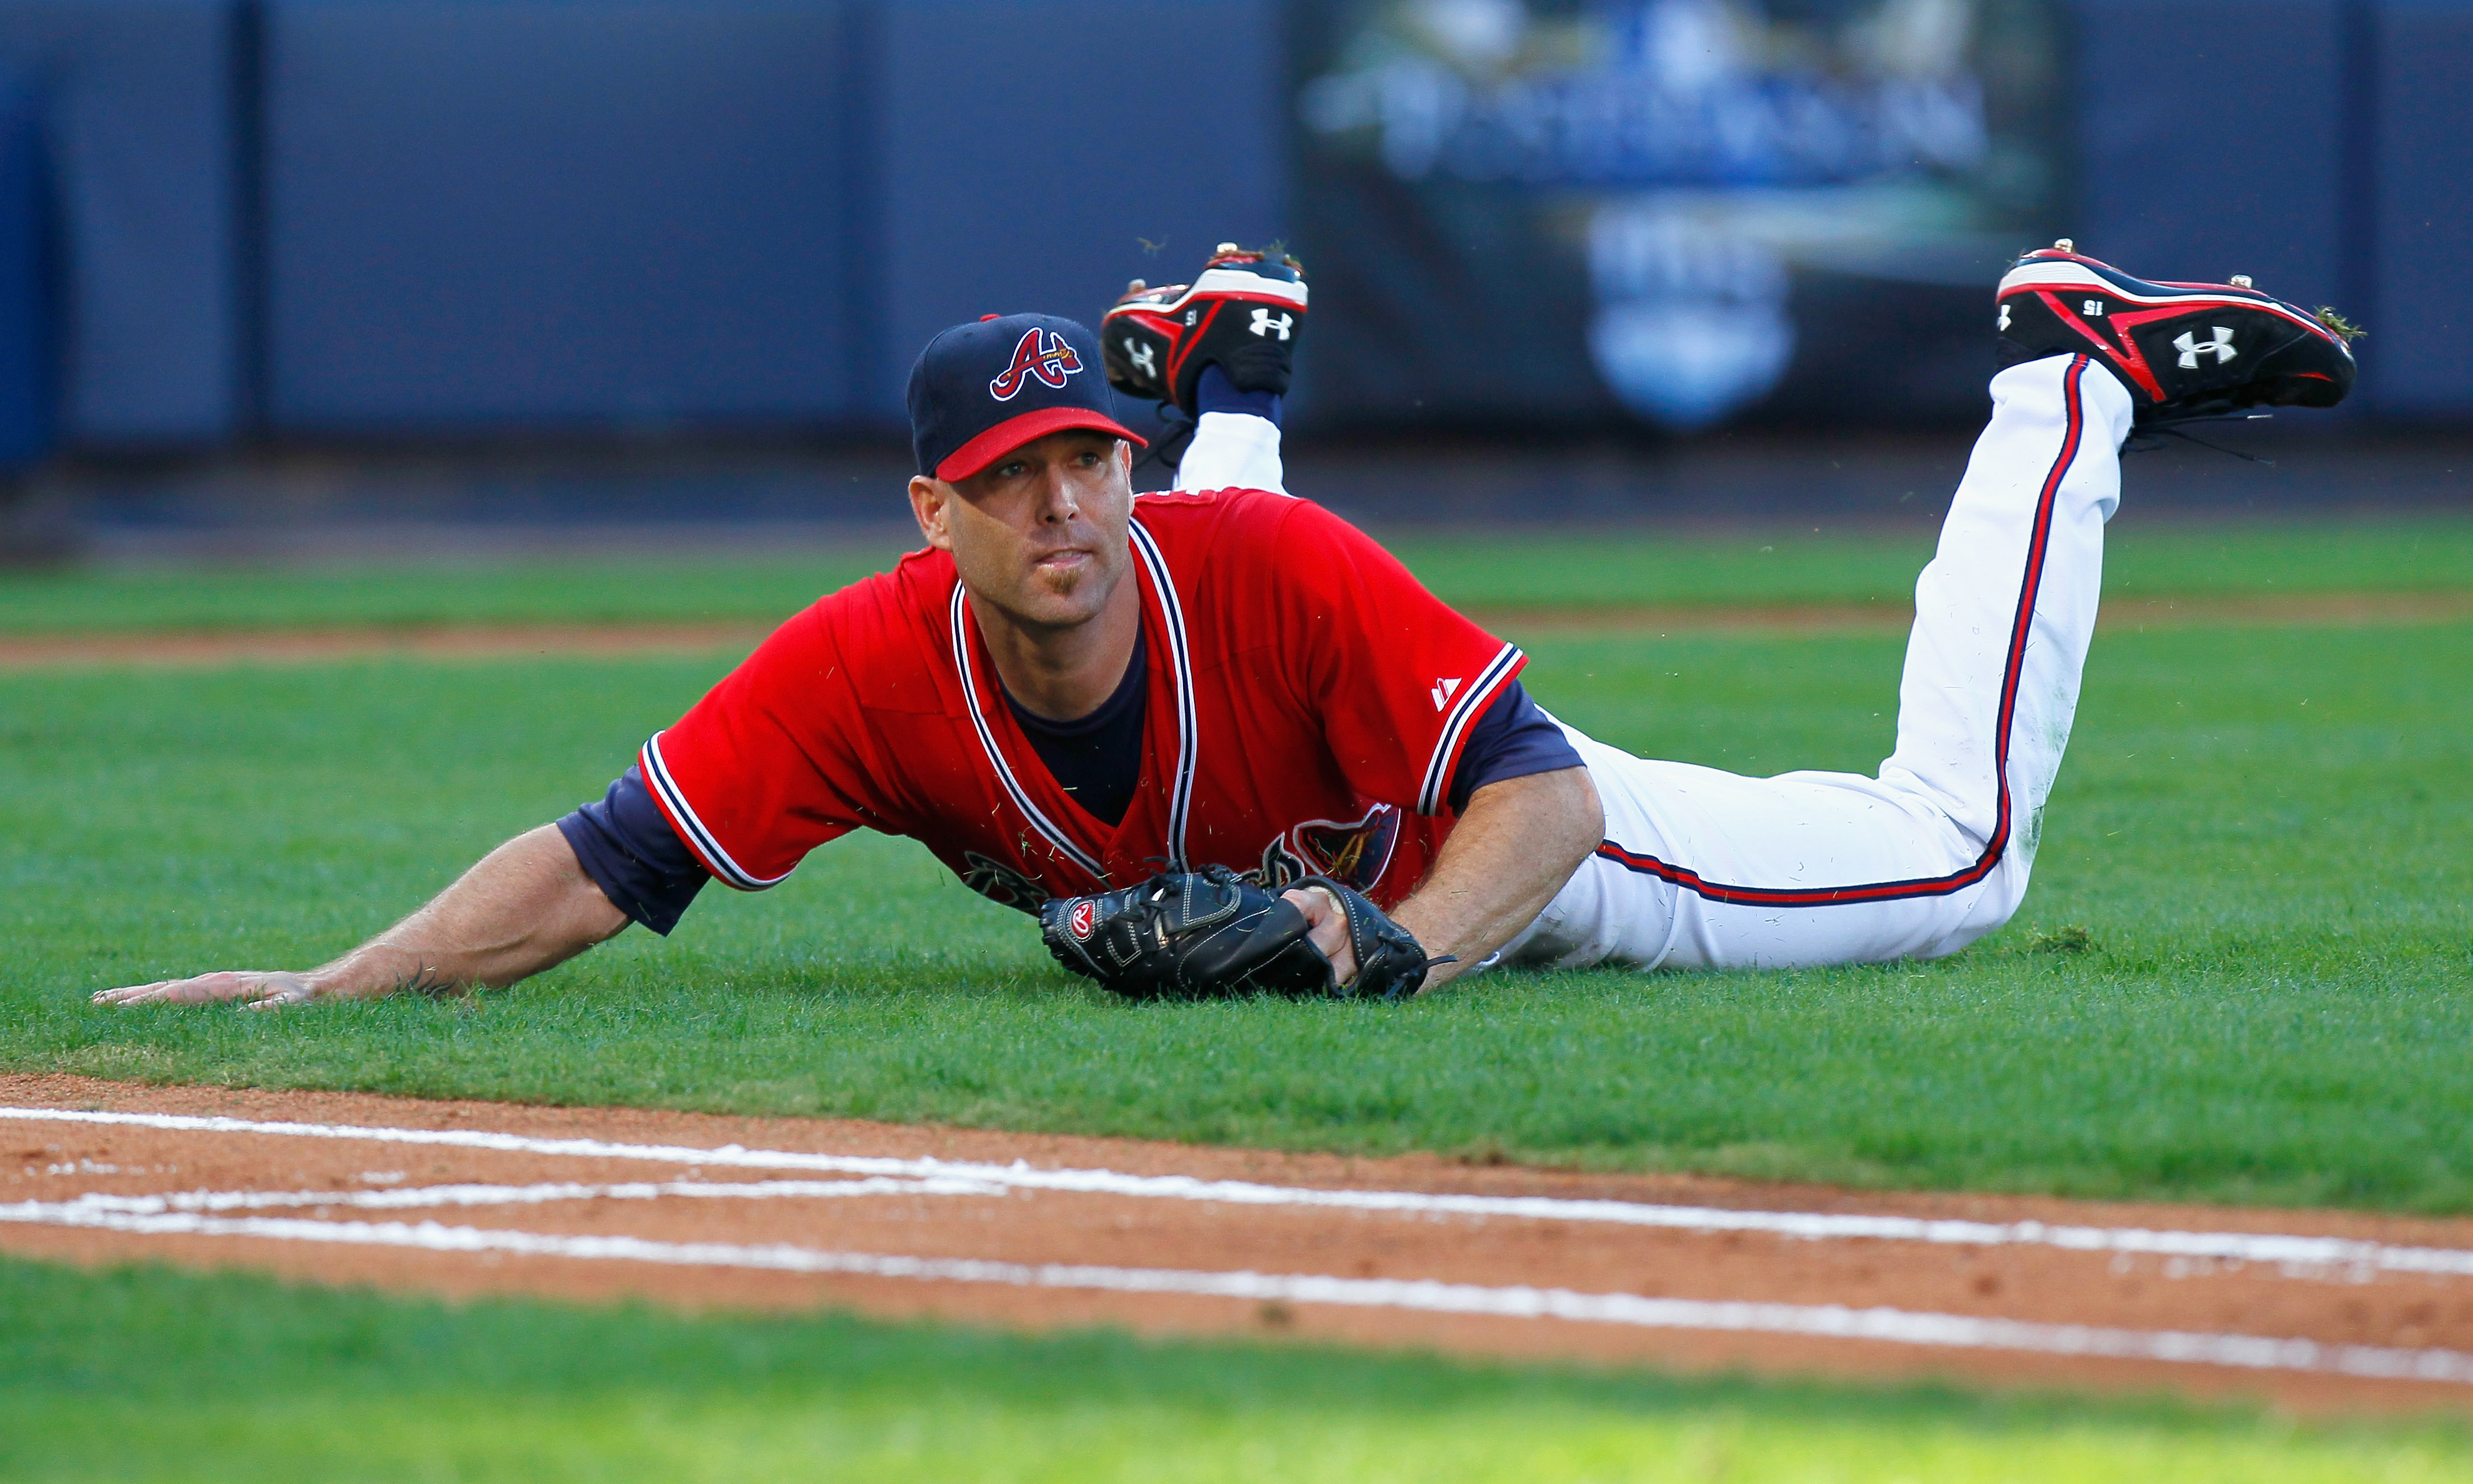 ATLANTA - OCTOBER 10:  Starting pitcher Tim Hudson #15 of the Atlanta Braves pitches slides in the infield after catching a bunt by Jonathan Sanchez #57 of the San Francisco Giants during Game Three of the NLDS of the 2010 MLB Playoffs at Turner Field on